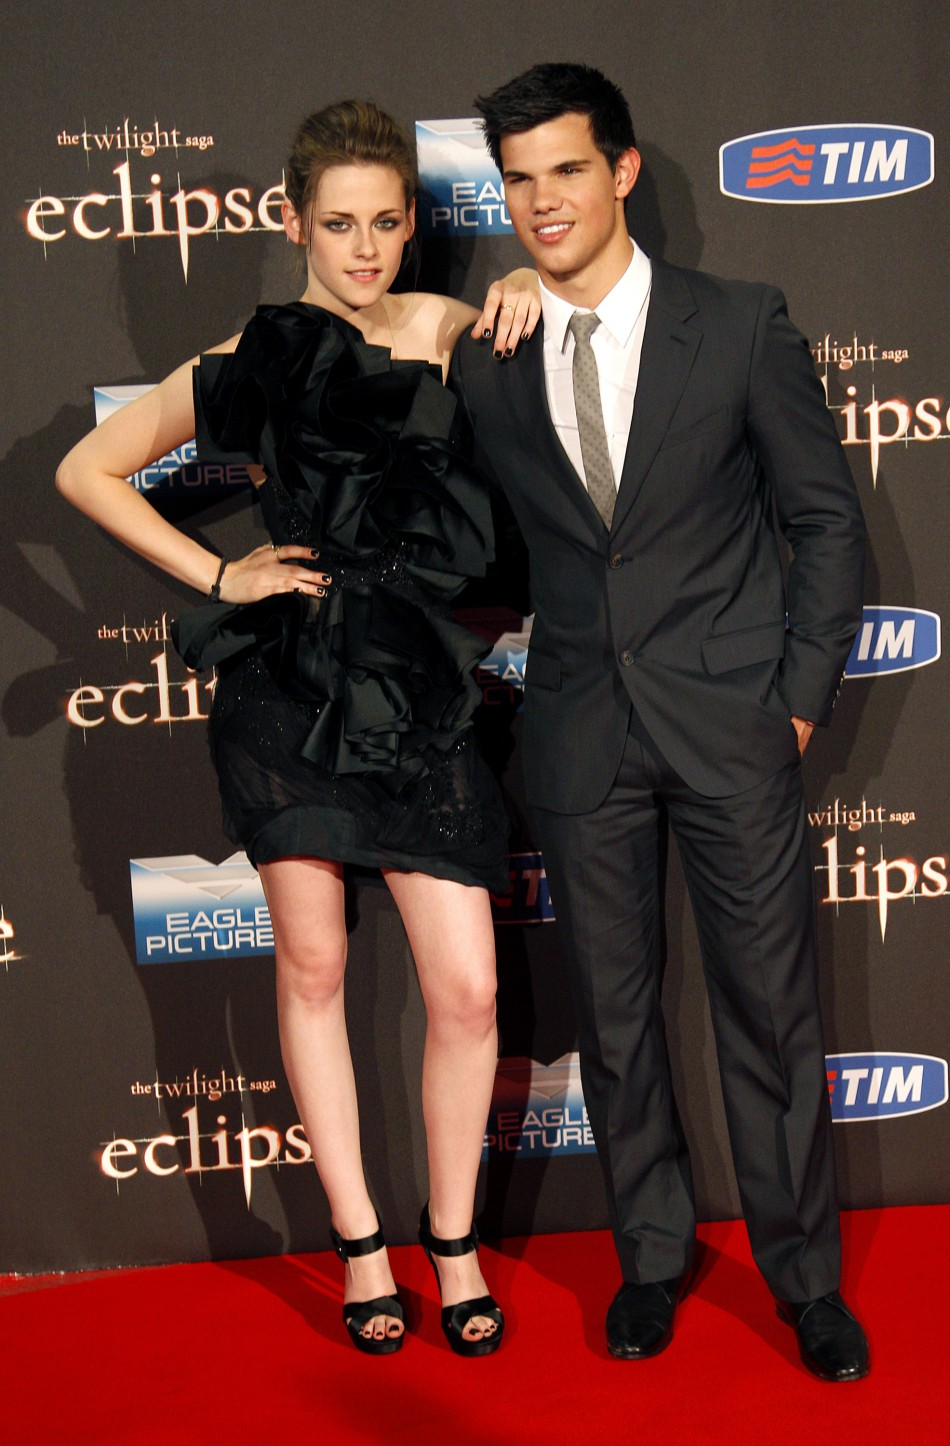 U.S. actors Lautner and Stewart pose as they arrive for the red carpet to promote the movie quotThe Twilight Saga Eclipsequot in downtown Rome